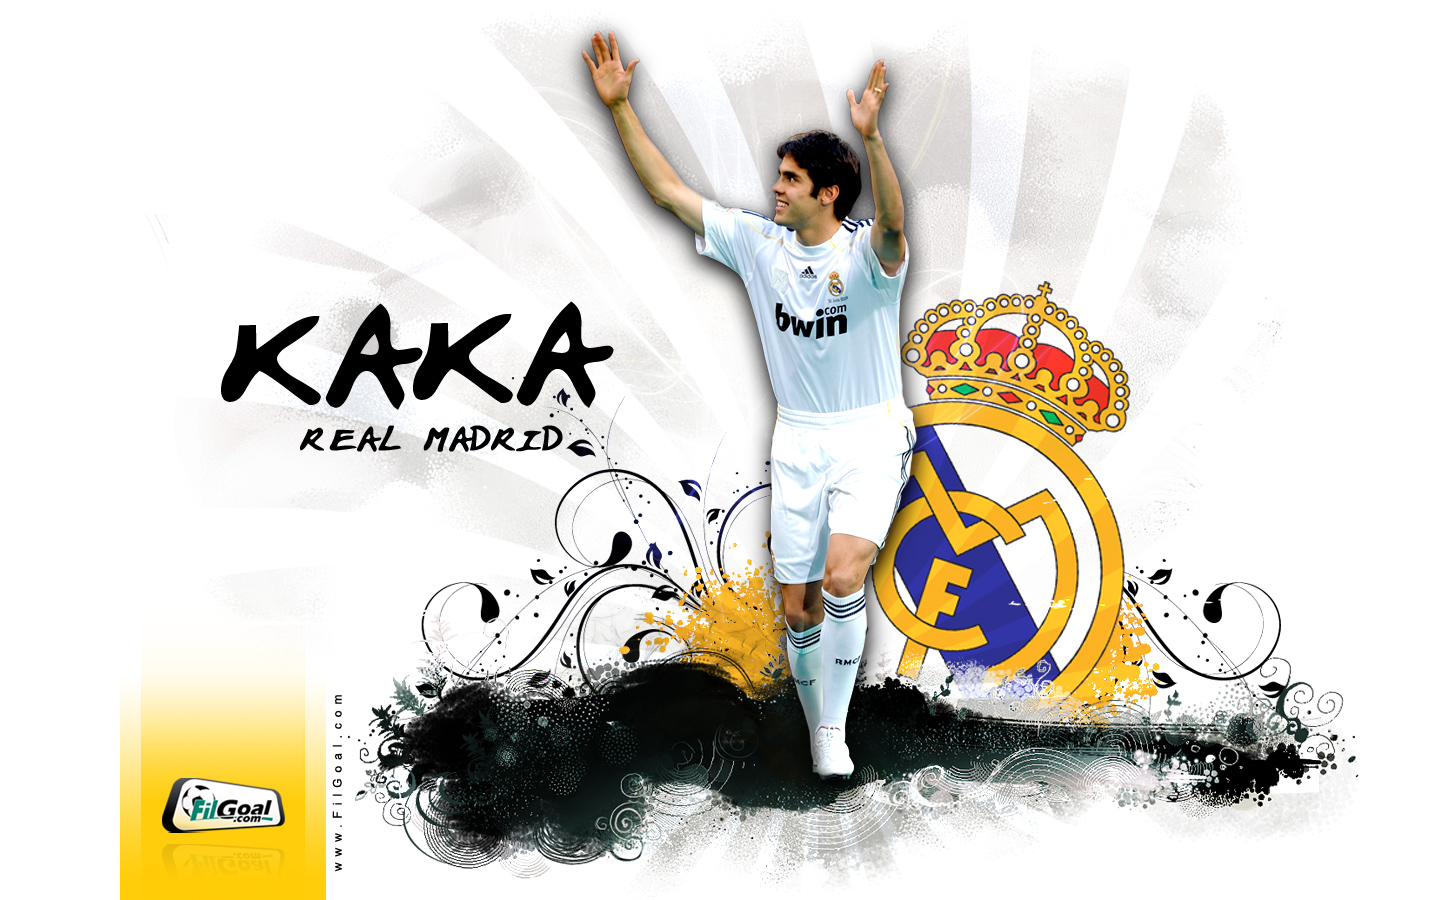 http://3.bp.blogspot.com/-XQgSDQBli28/TwnMnEYP7JI/AAAAAAAAElg/25G6yyzEJ80/s1600/Ricardo+Kaka+Real+madrid+wallpapers+for+desktop+2012+full+HD+5.jpg